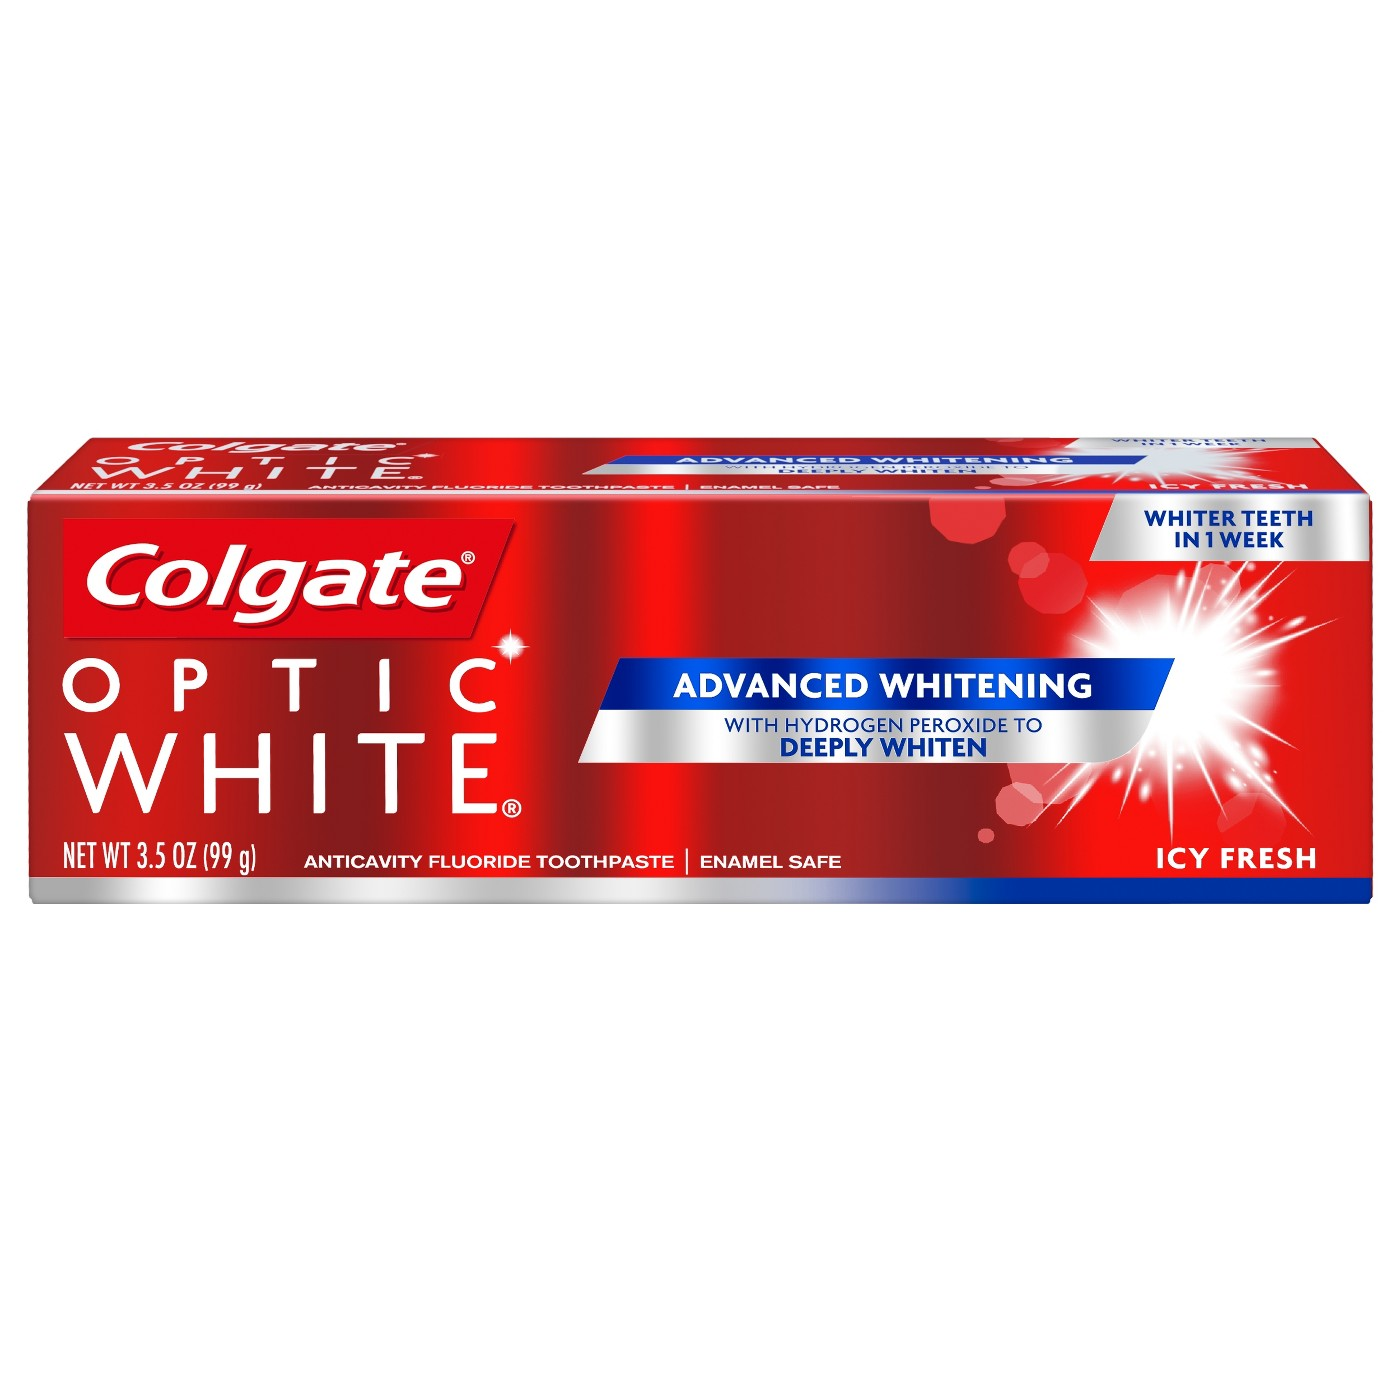 3-Pk. Colgate Optic White Whitening Toothpaste Icy Fresh - 3.5oz + $5 GC